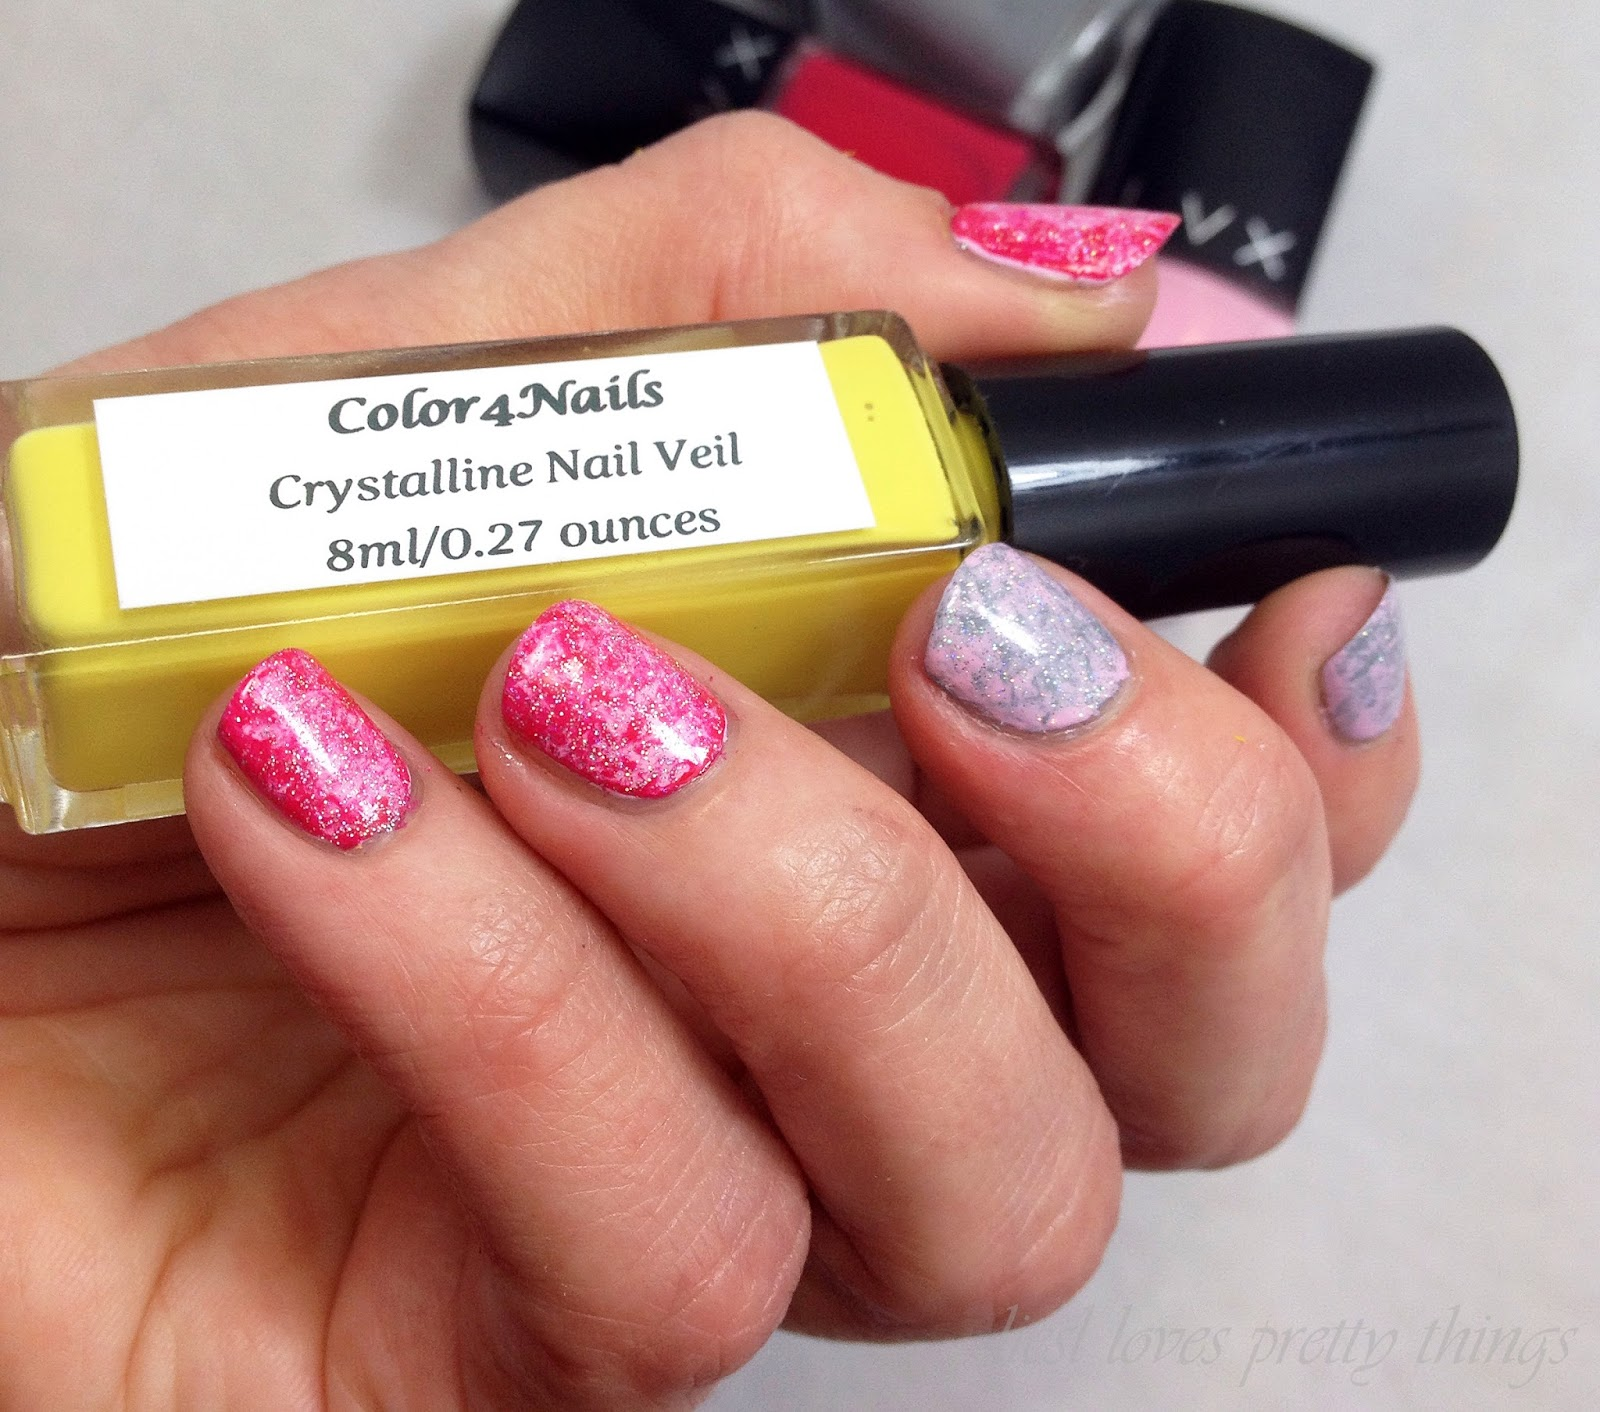 Color4Nails Crystalline Nail Veil Review